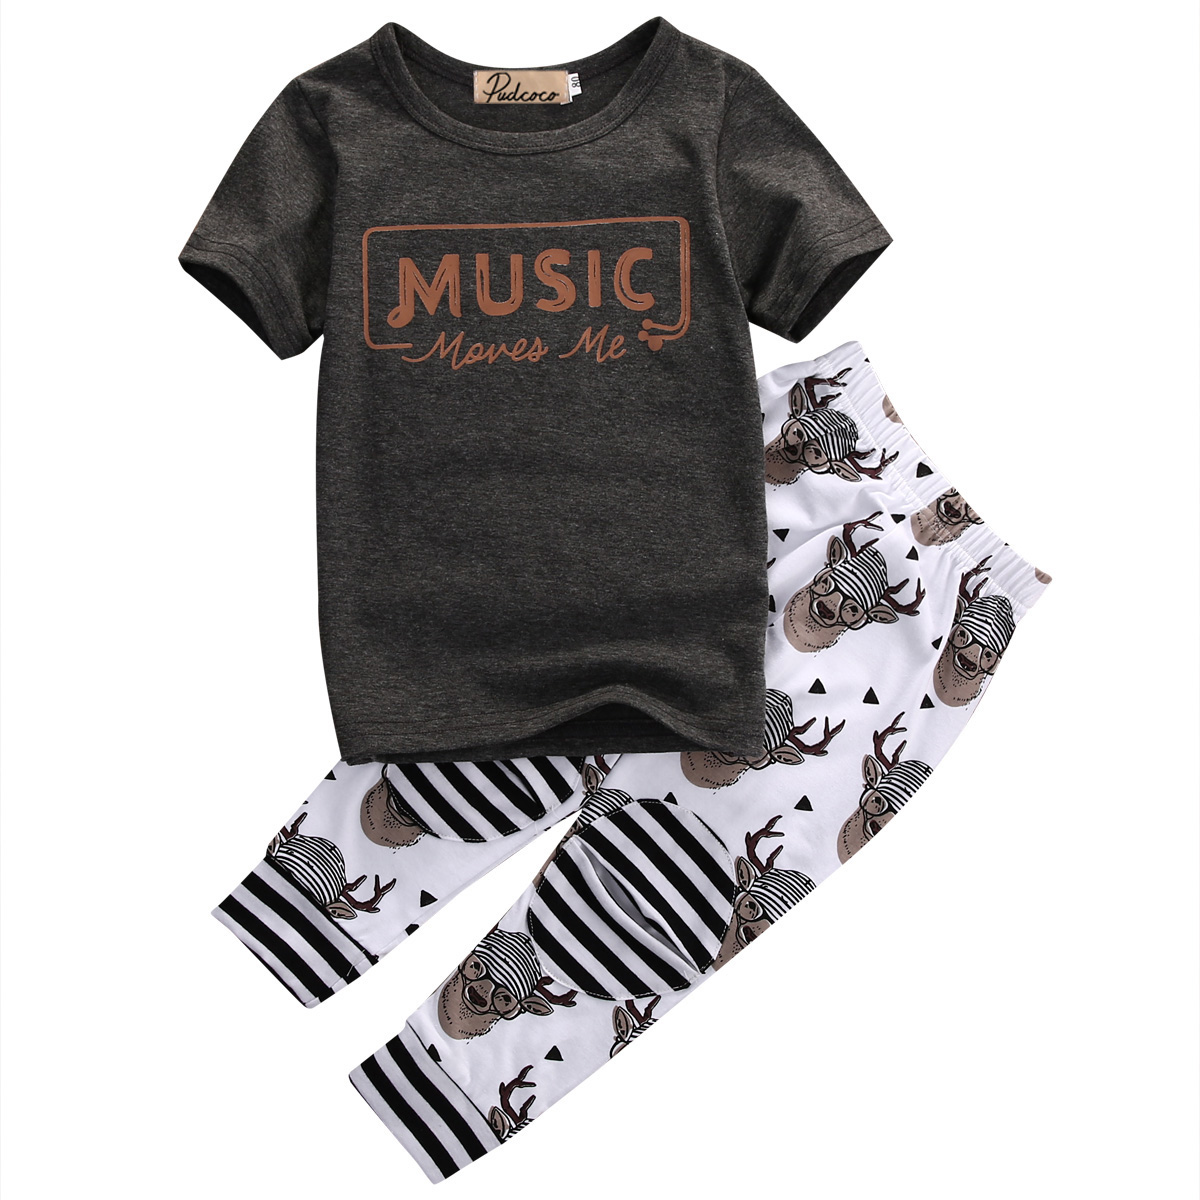 Toddler Baby Boys Girls Clothes Set Summer Letter Kid T Shirt Tops Pants Trousers Children Clothing Boy Girl Outfits Set 2Pcs 2pcs newborn baby boys clothes set gold letter mamas boy outfit t shirt pants kids autumn long sleeve tops baby boy clothes set